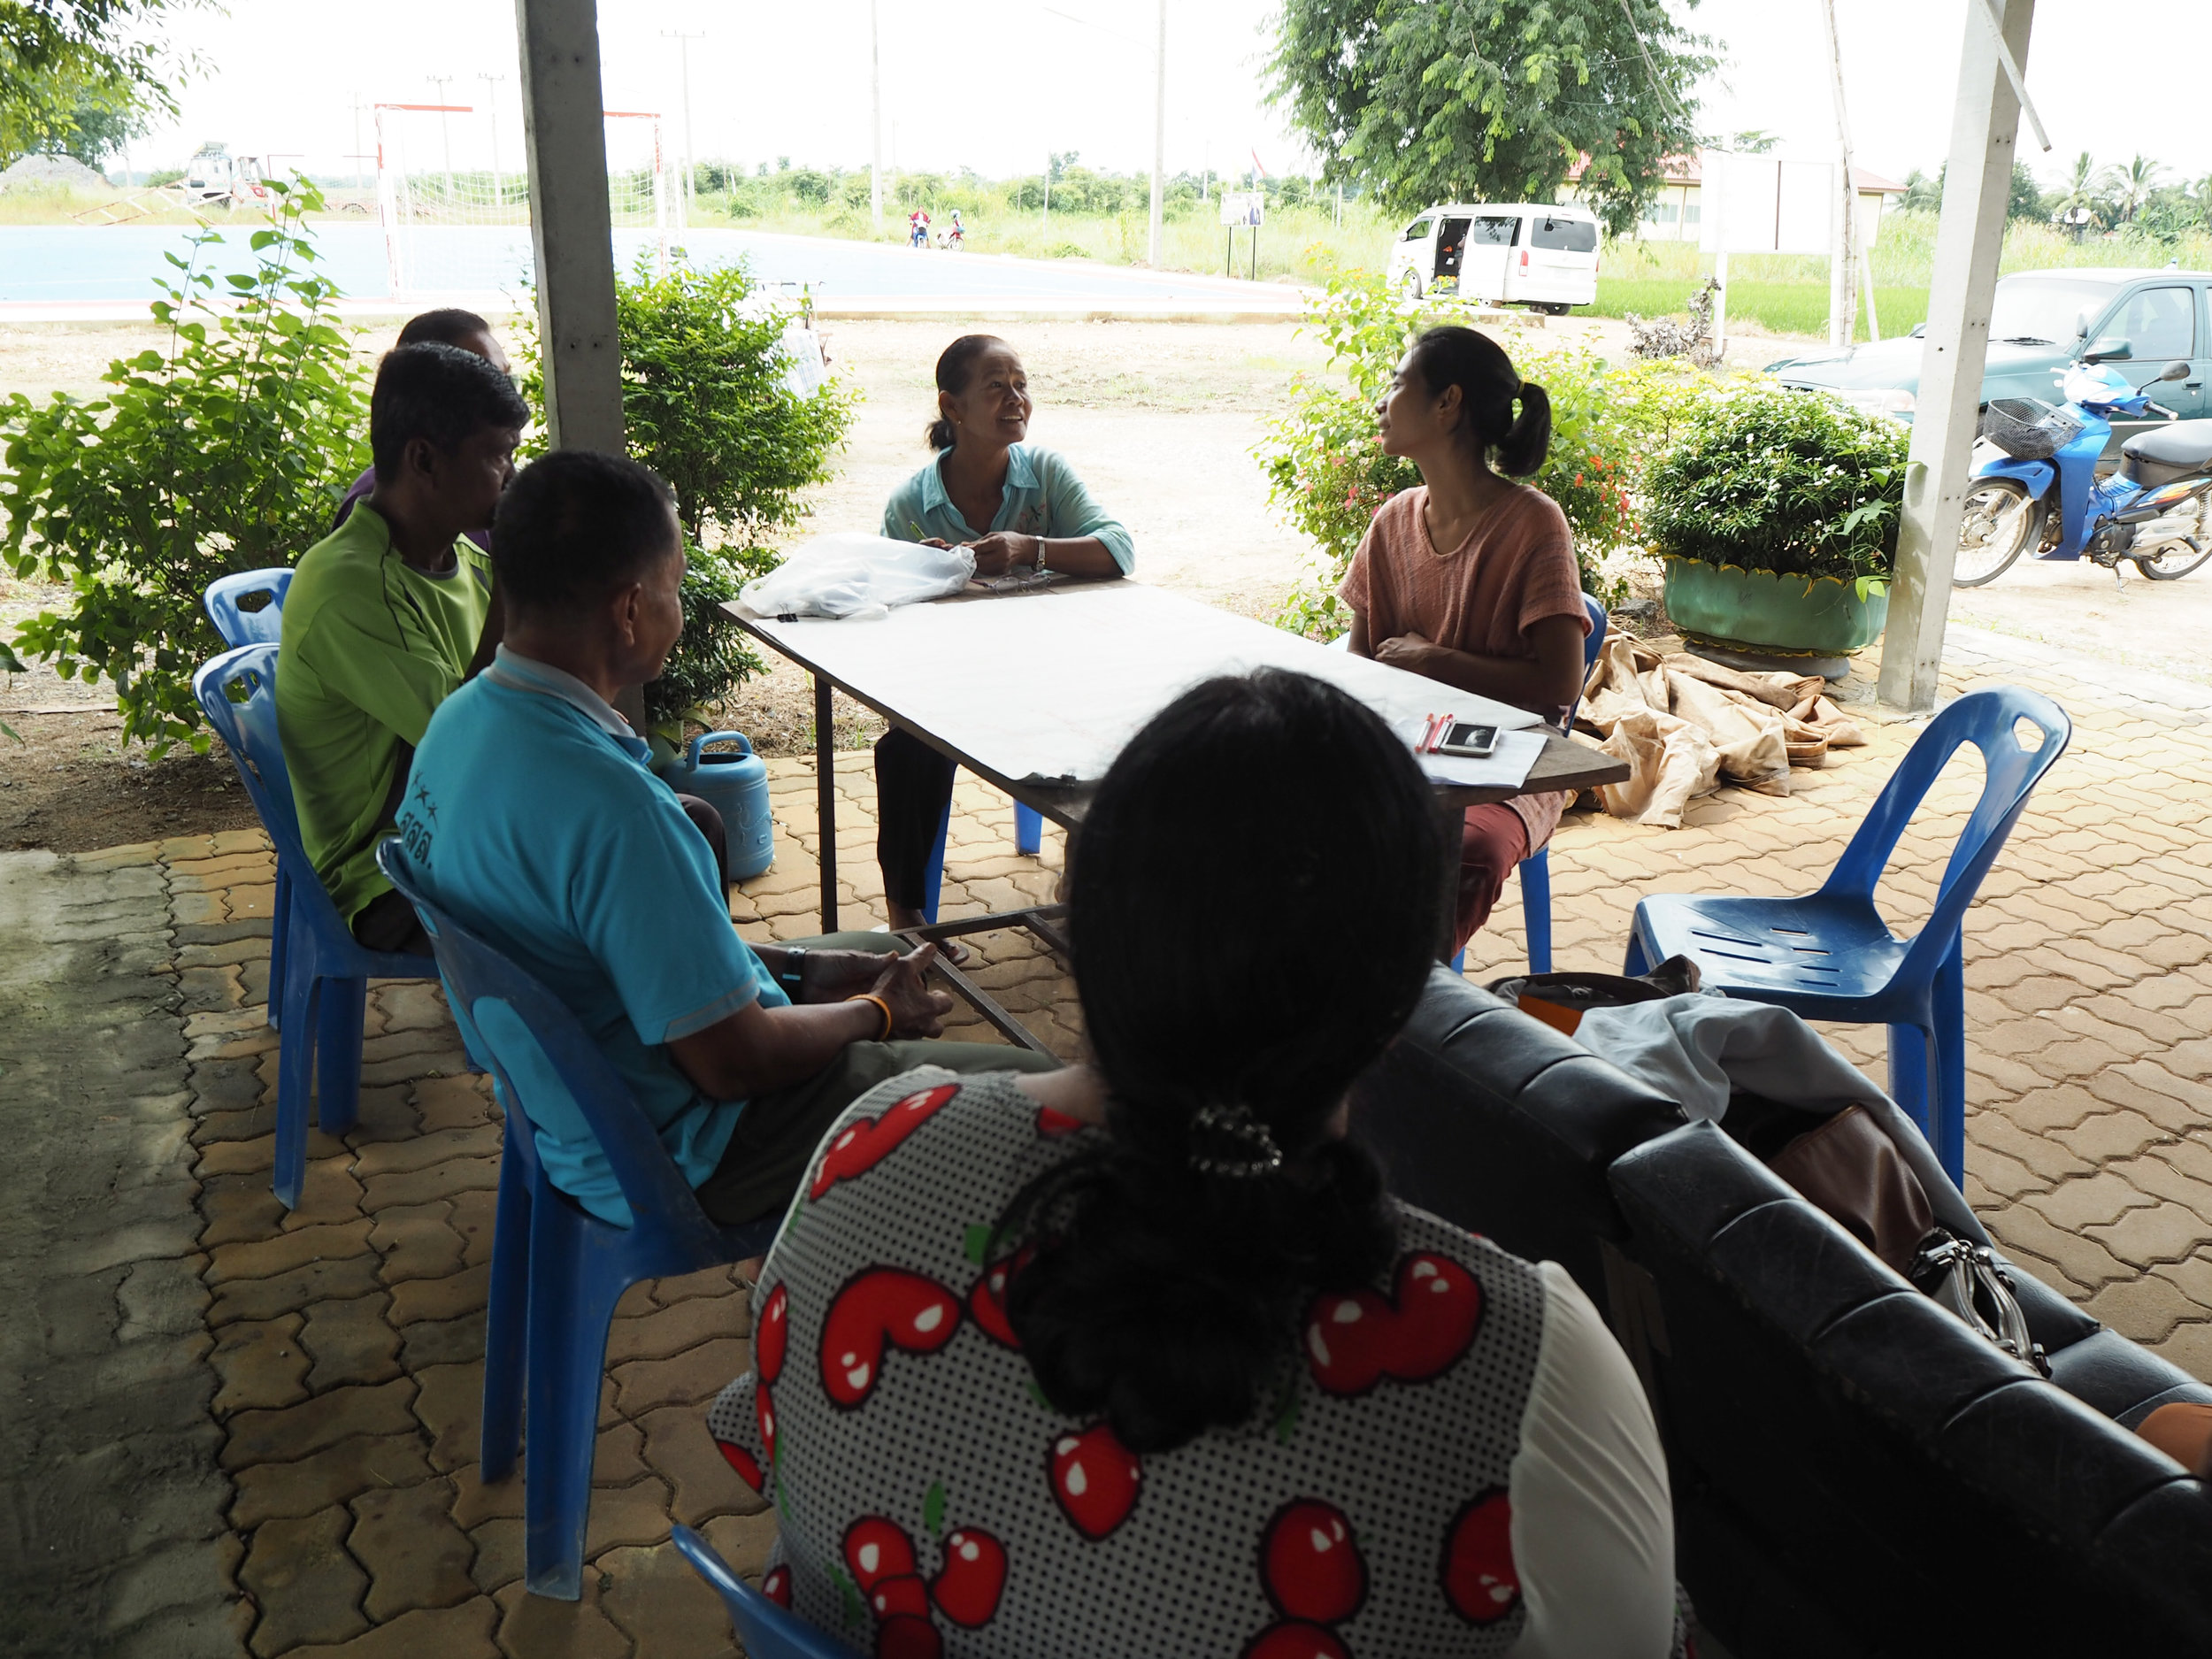 Leave No One Behind: Community-driven urban development in Thailand - Community meeting